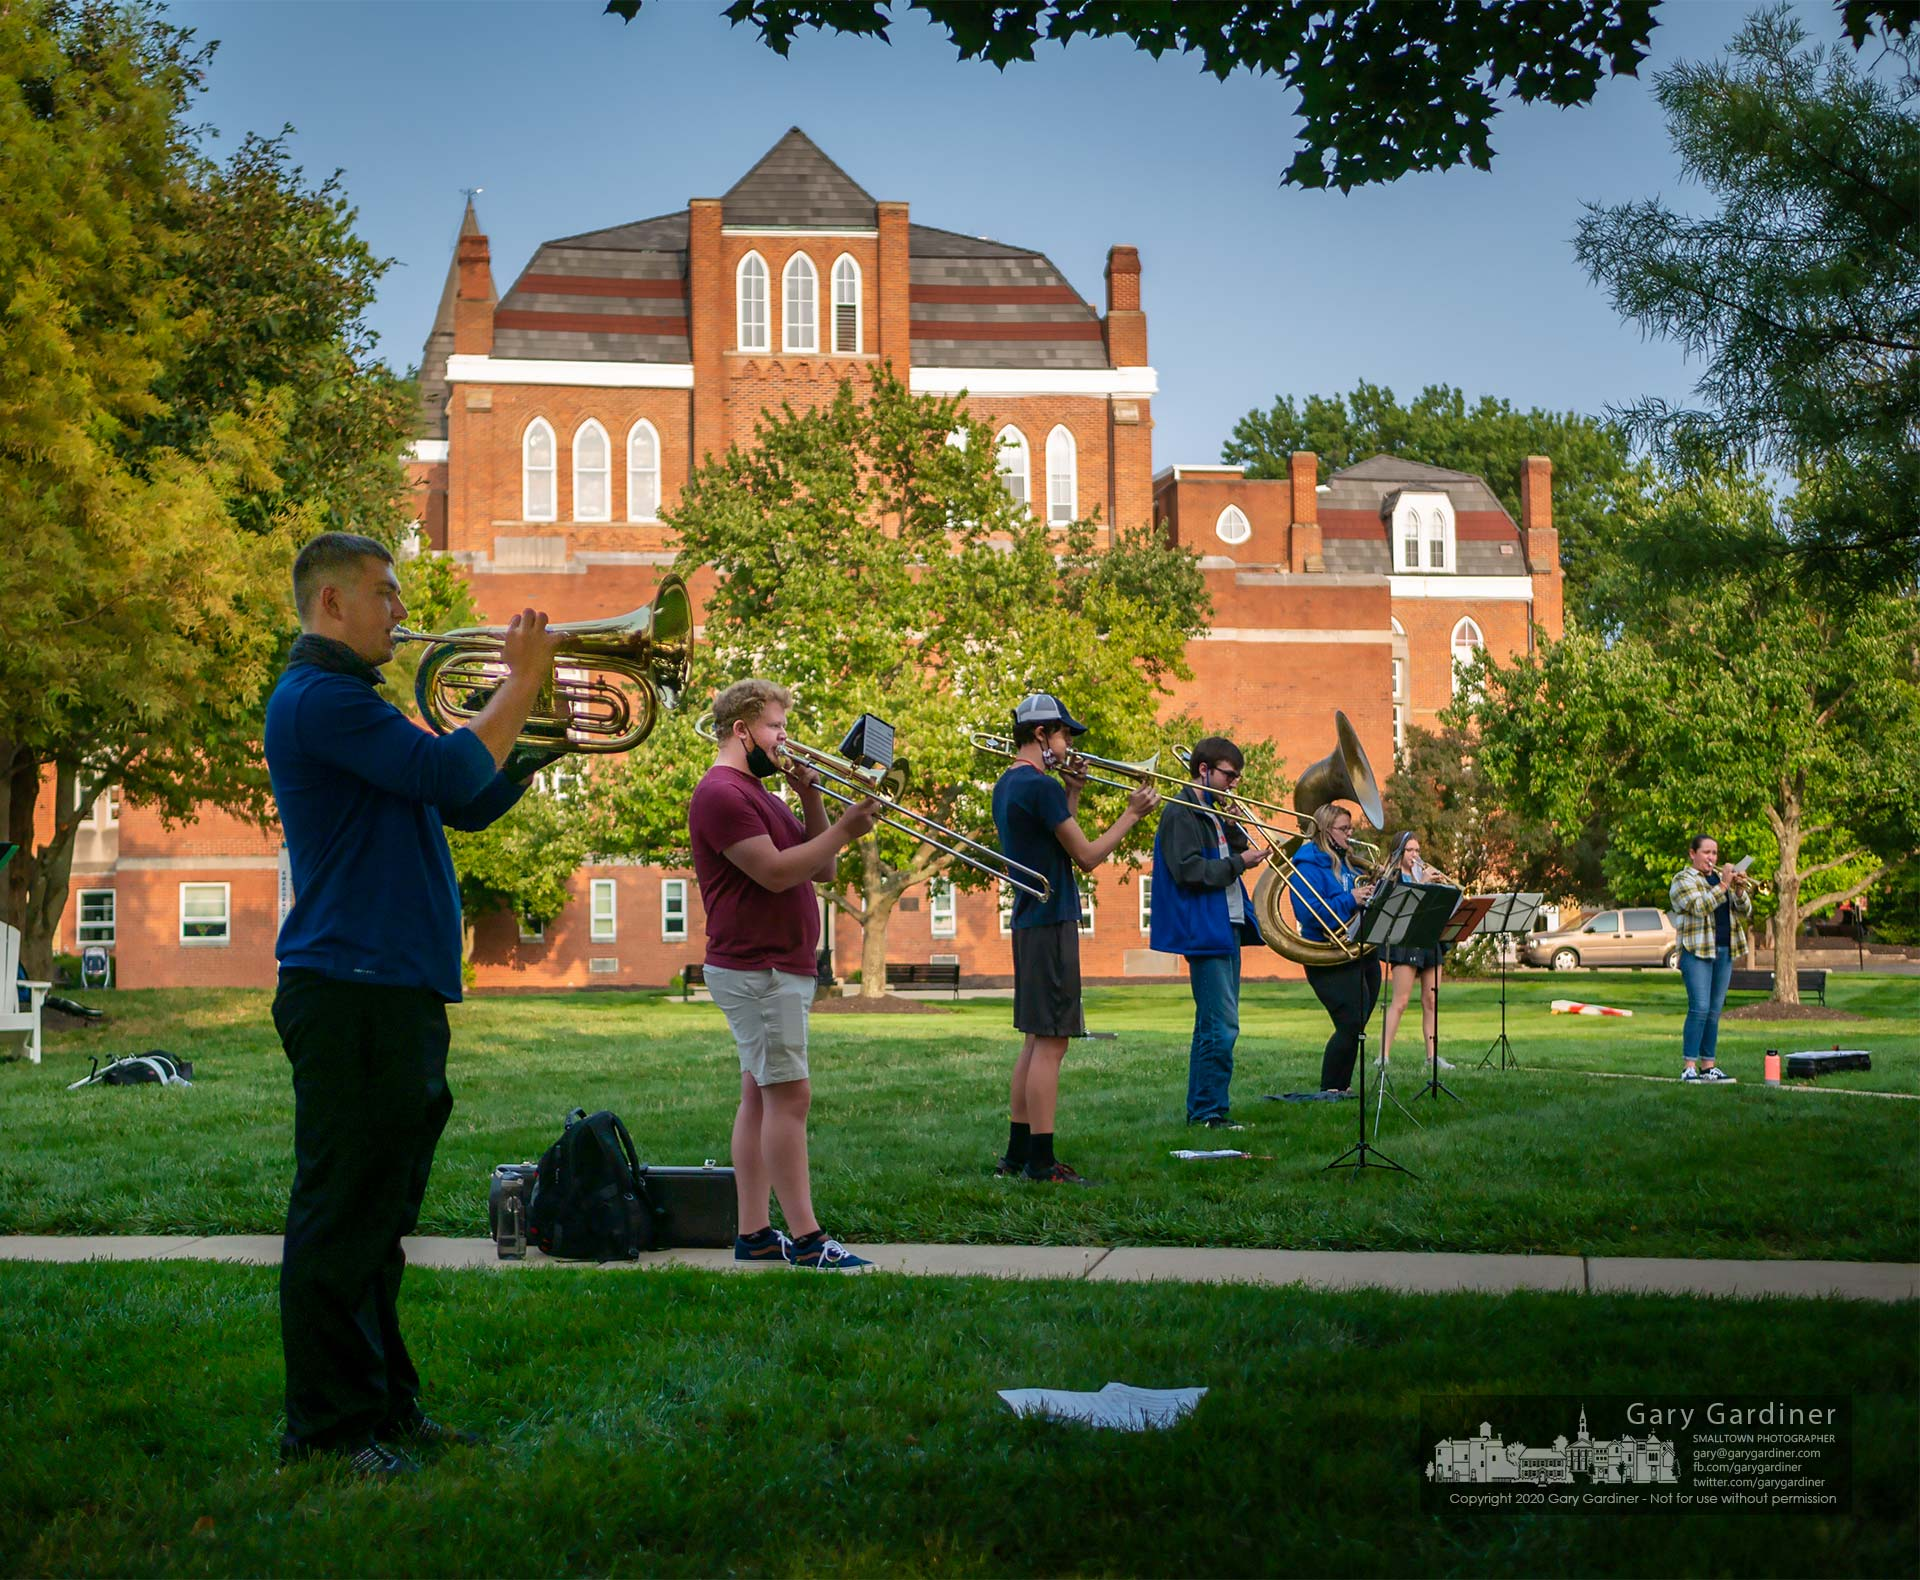 Otterbein music students practice as a safe social distance on the green outside the art building. My Final Photo for Sept. 15, 2020.